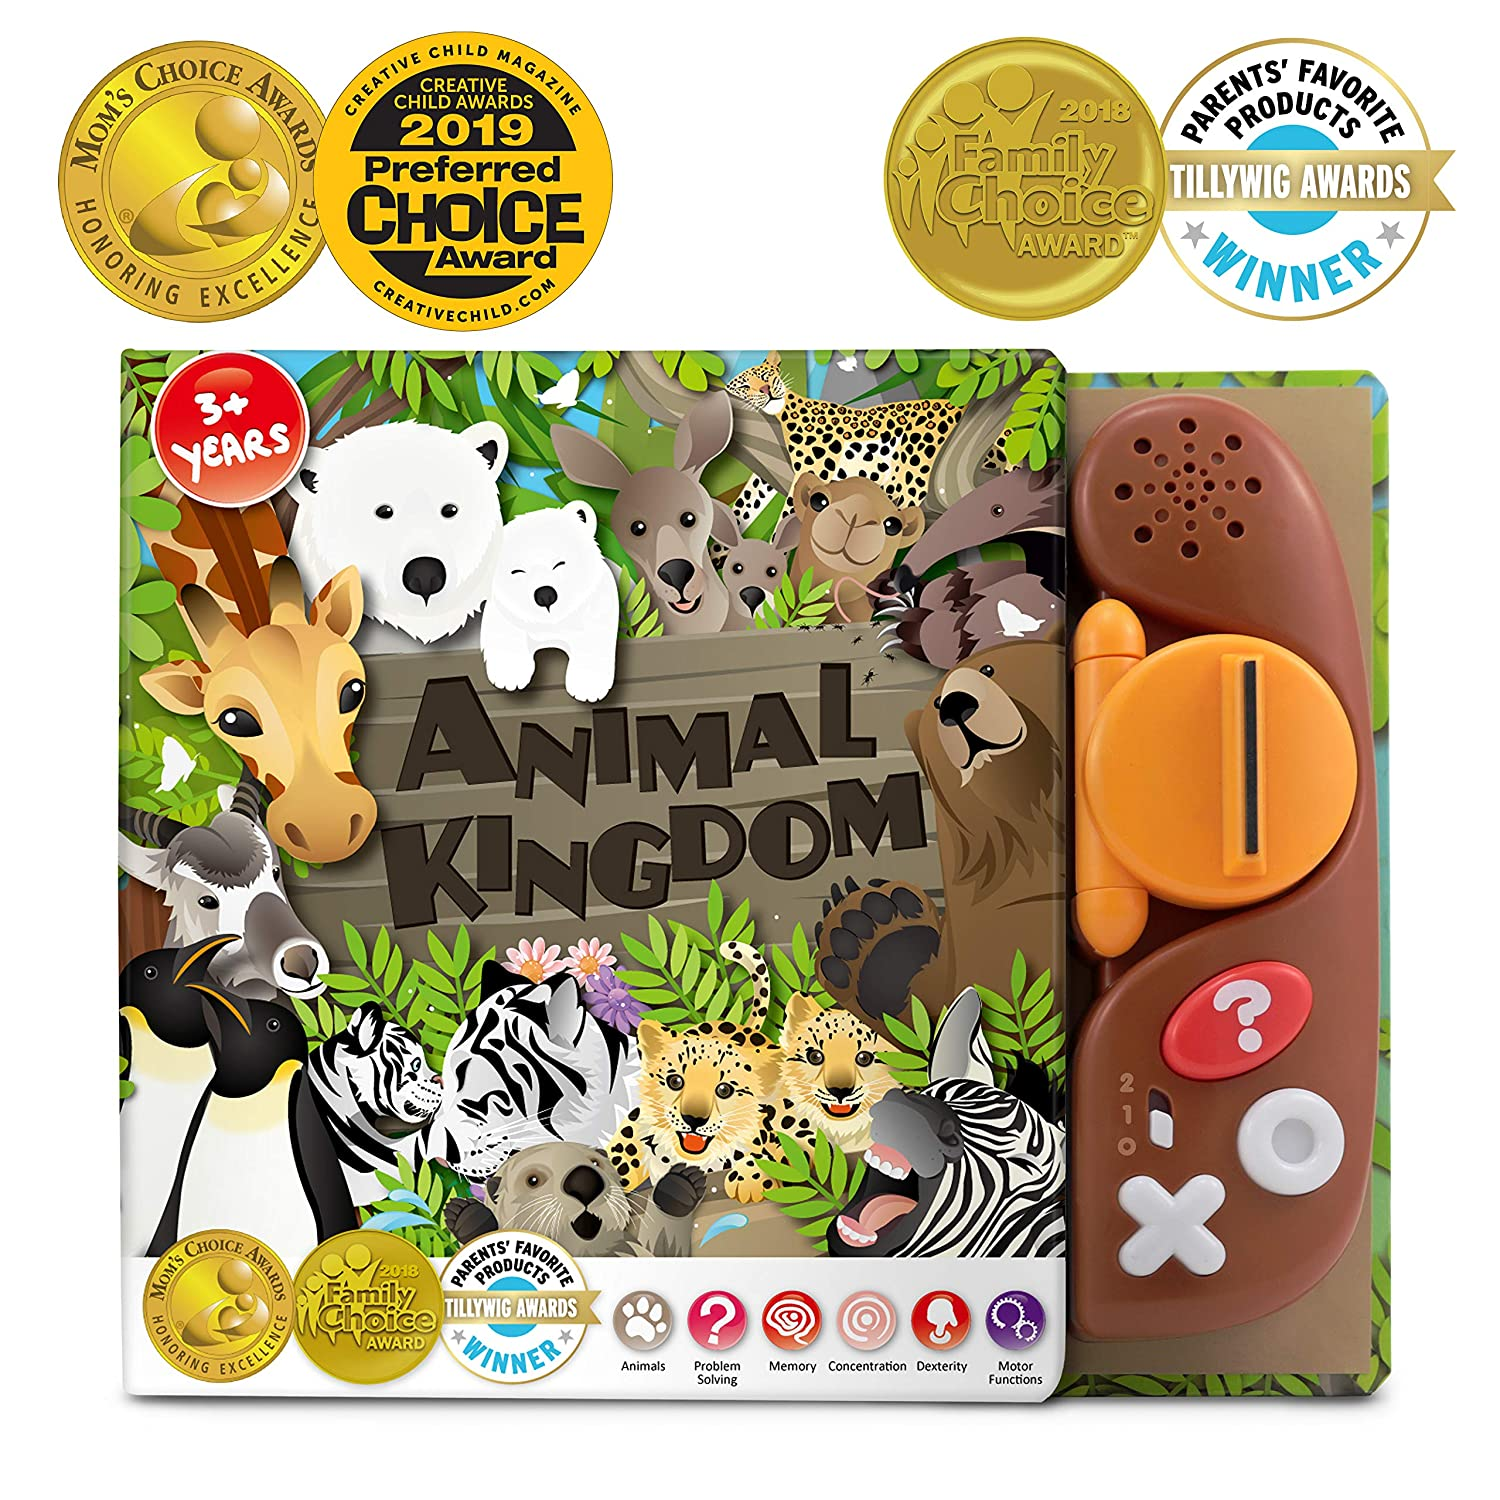 BEST LEARNING Book Reader Animal Kingdom - Educational Talking Sound Toy to  Learn About Animals with Quiz Games for Kids of Ages 3 to 8 Years